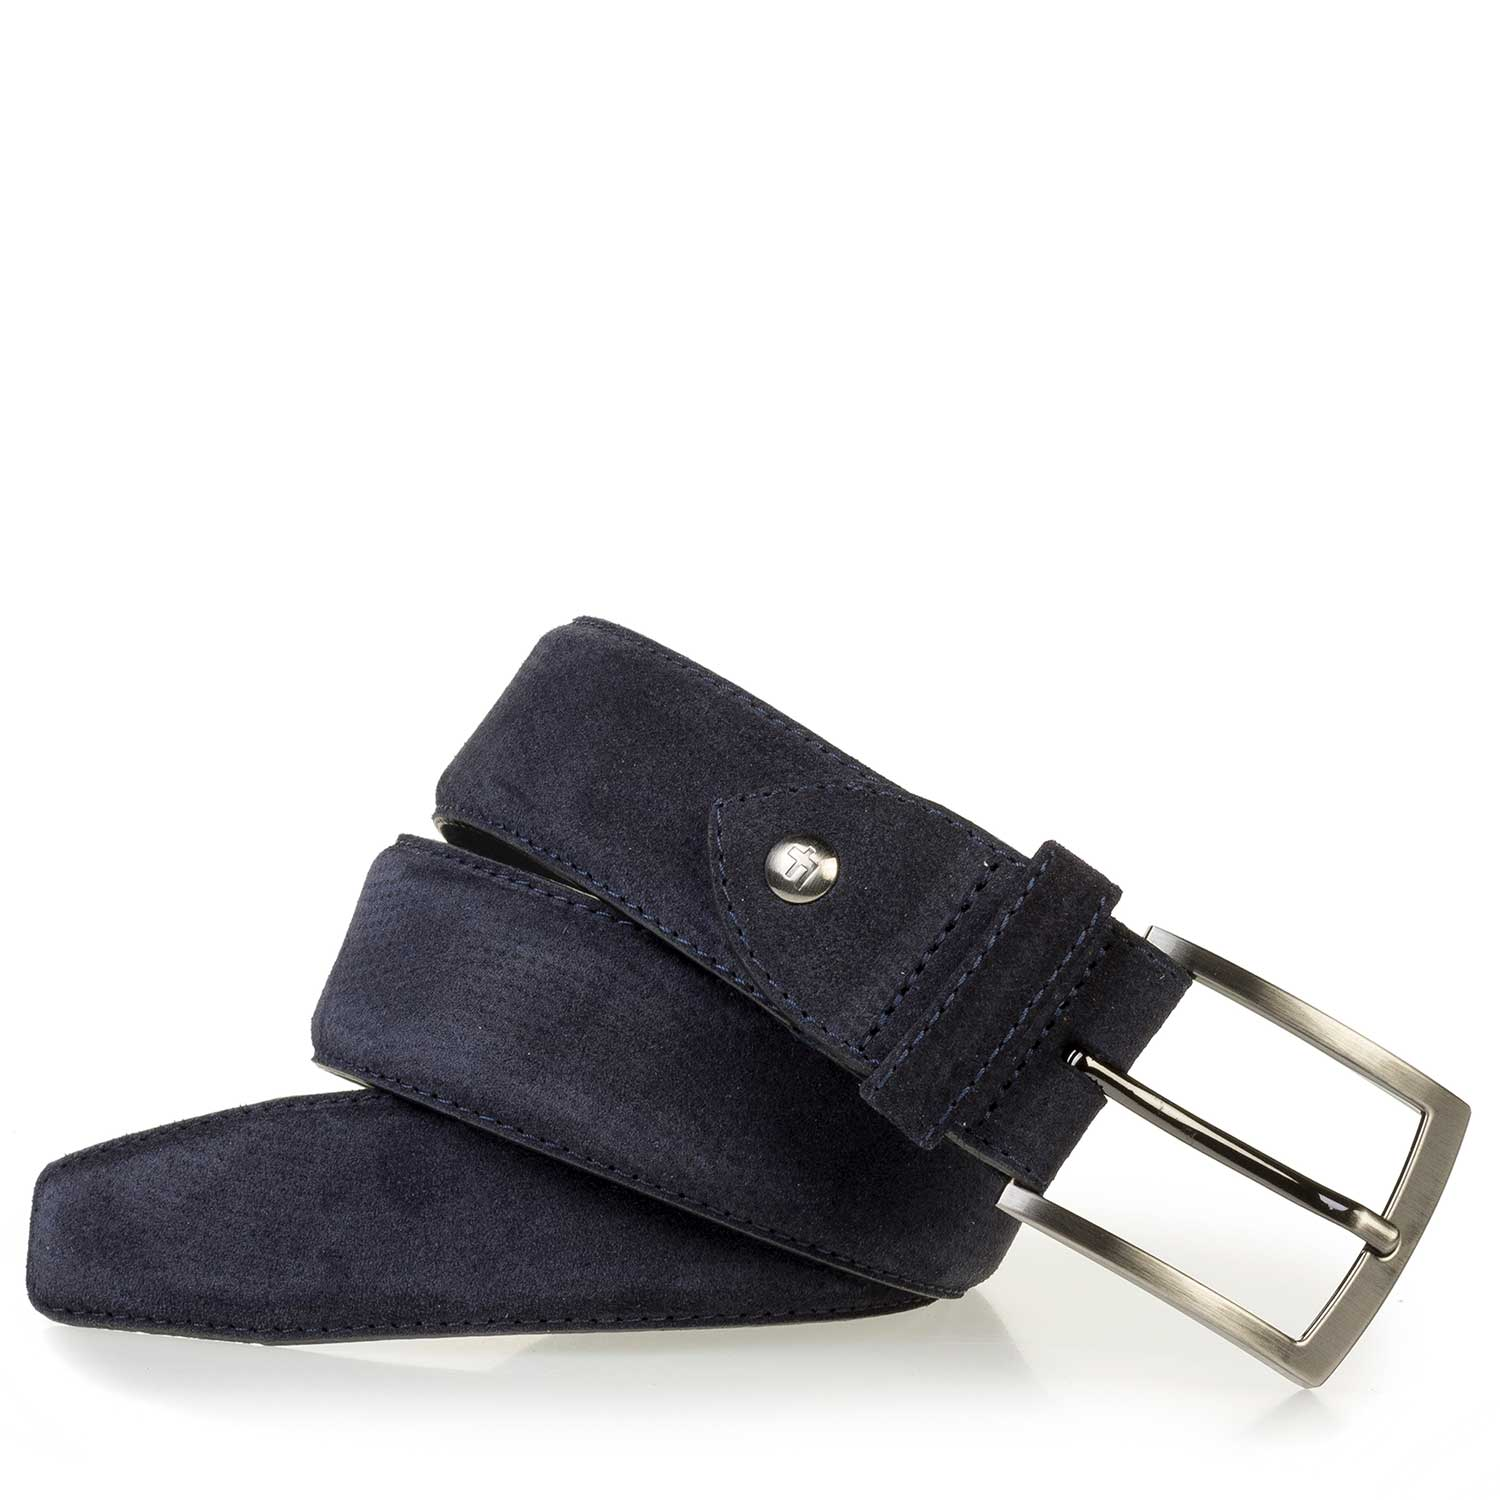 75200/58 - Dark blue suede leather belt with a pattern